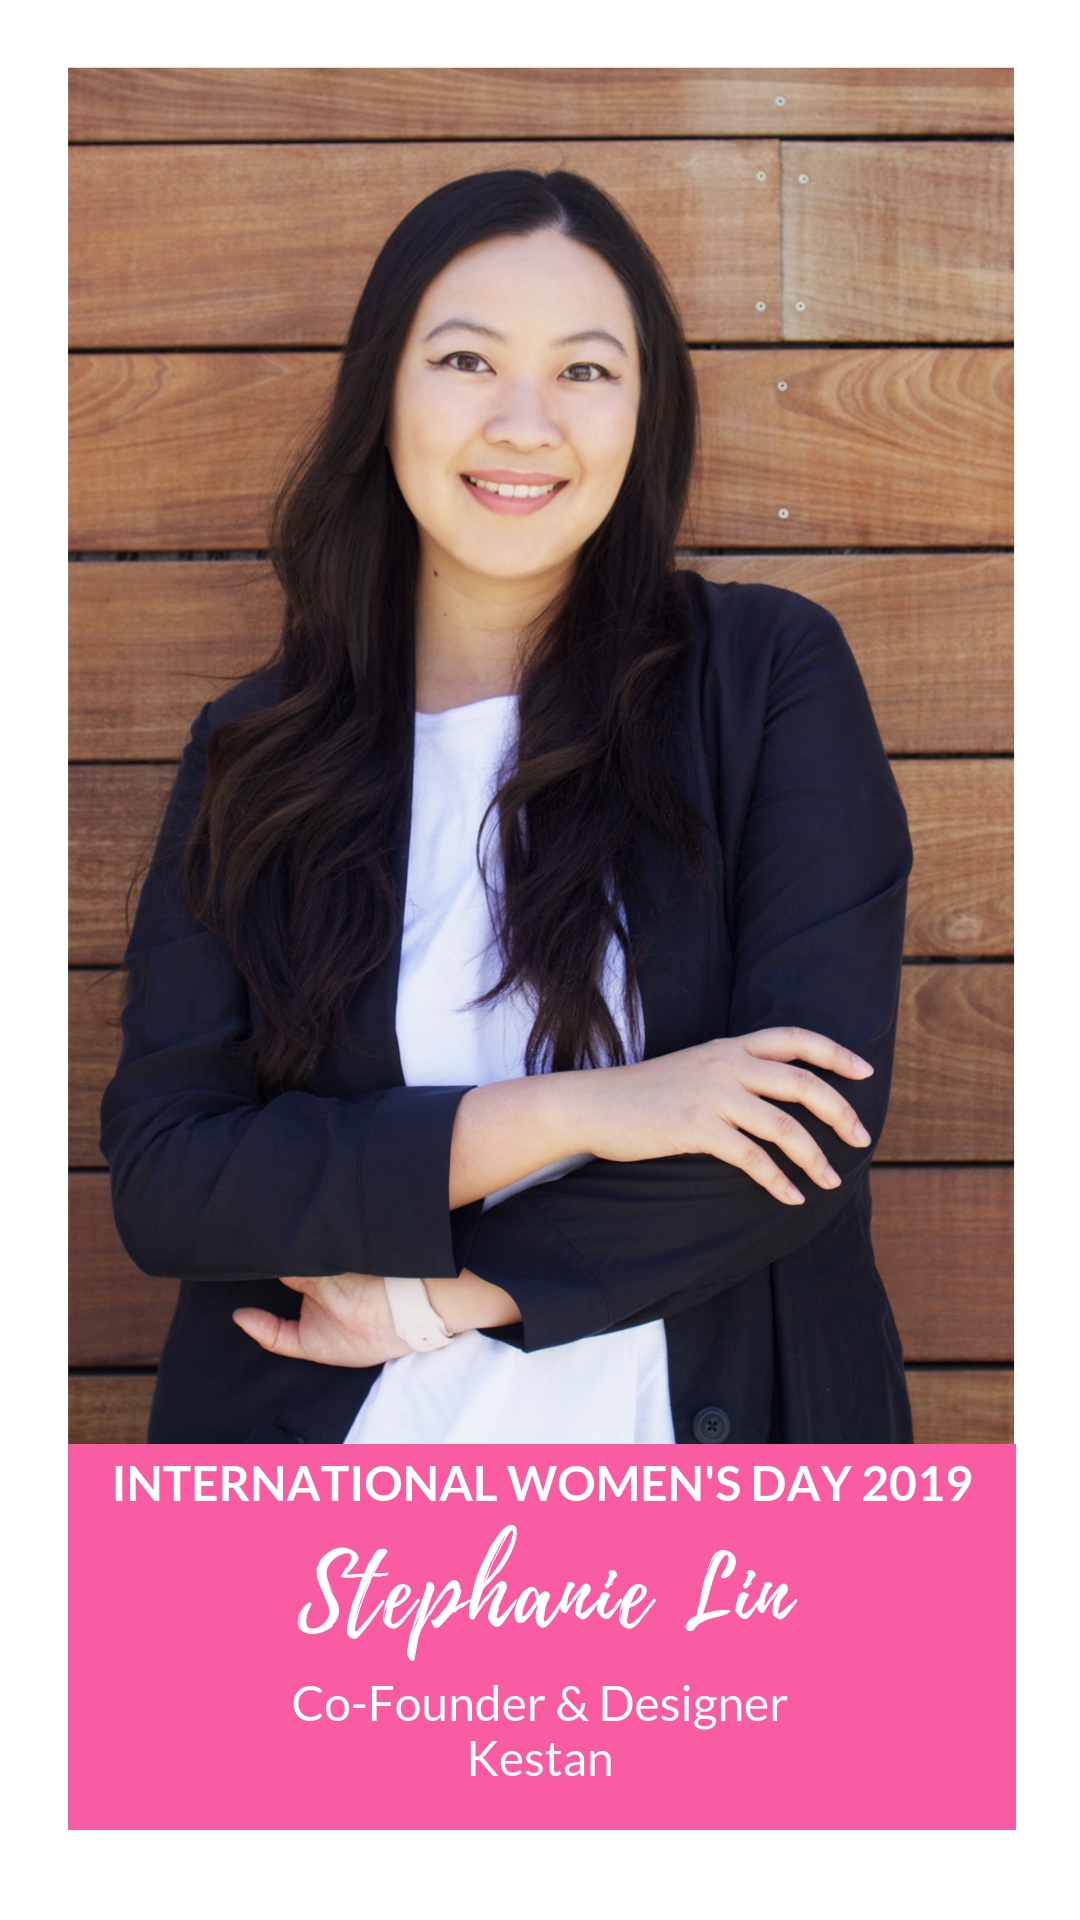 International Women's Day - Stephanie Lin